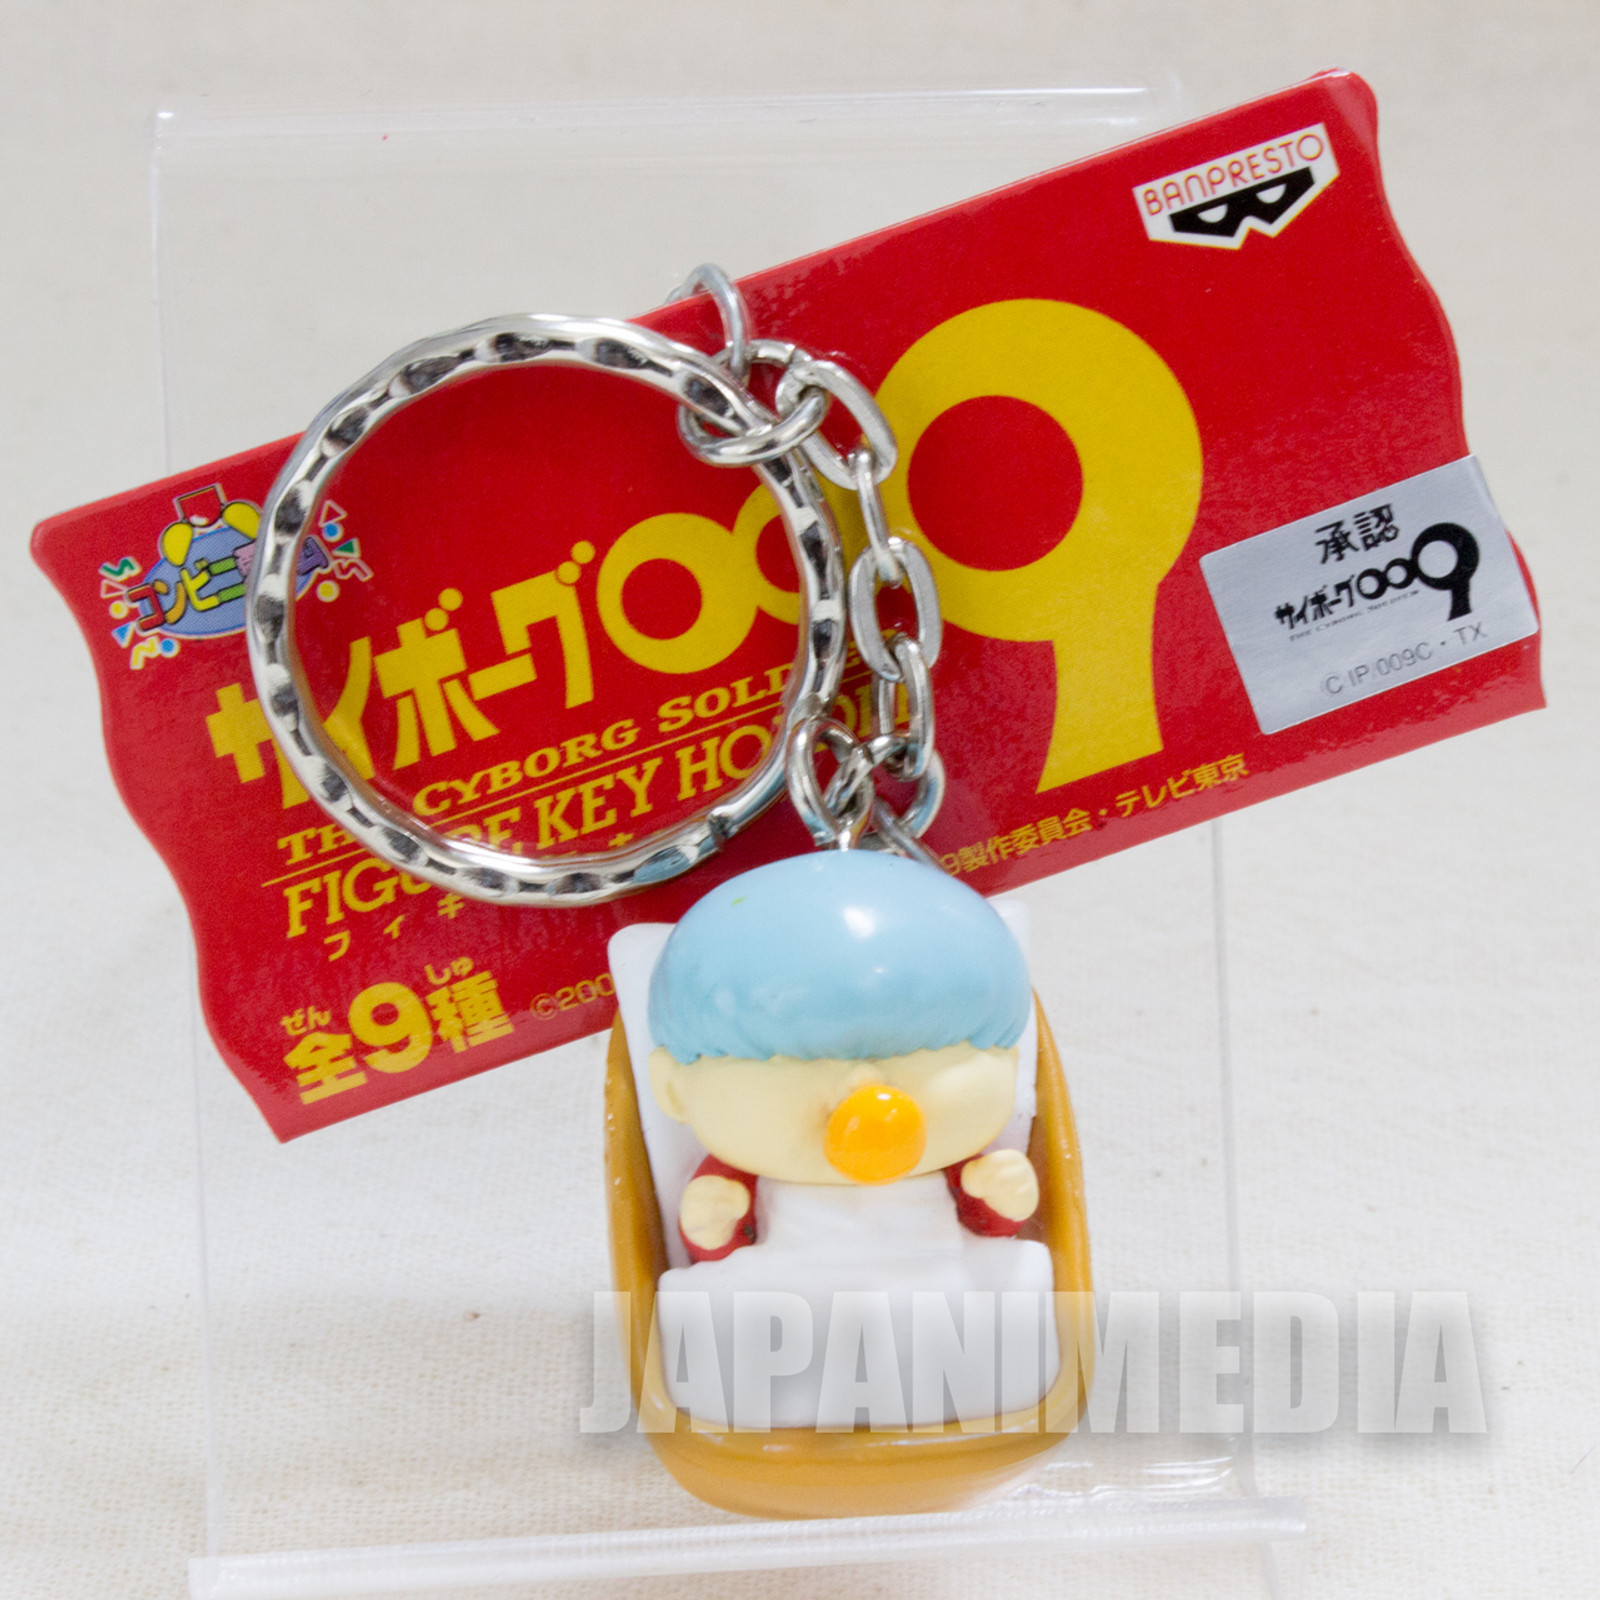 Cyborg 009 Ivan Whisky 001 Figure Keychain JAPAN ANIME